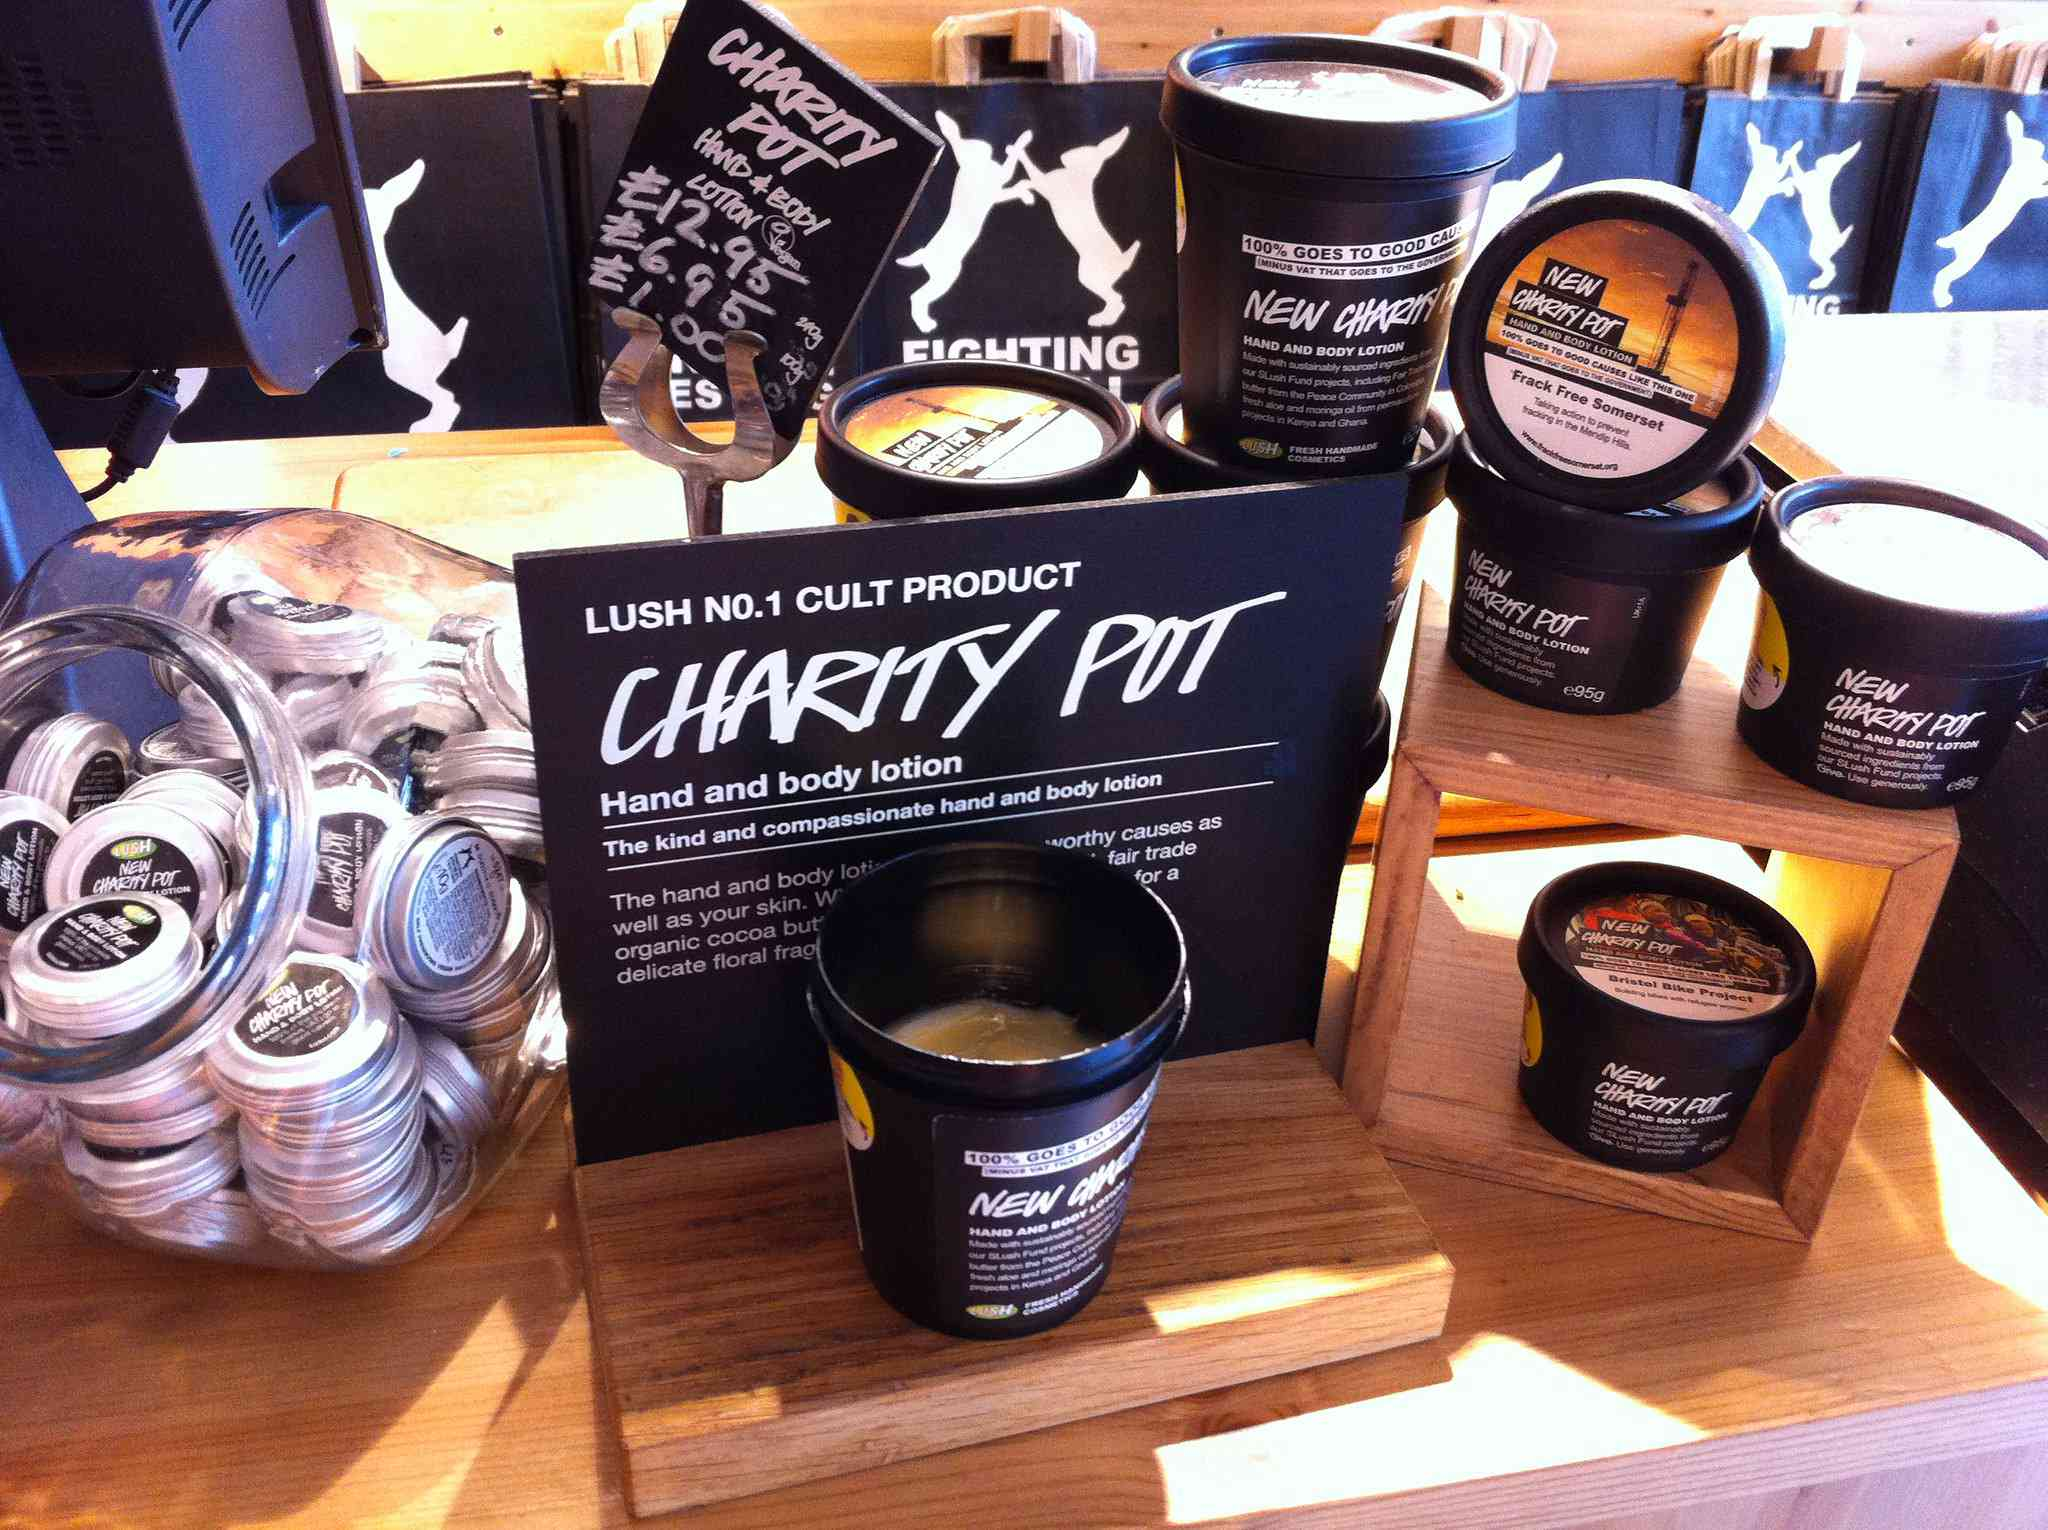 Store display for Lush's charity pot lotion